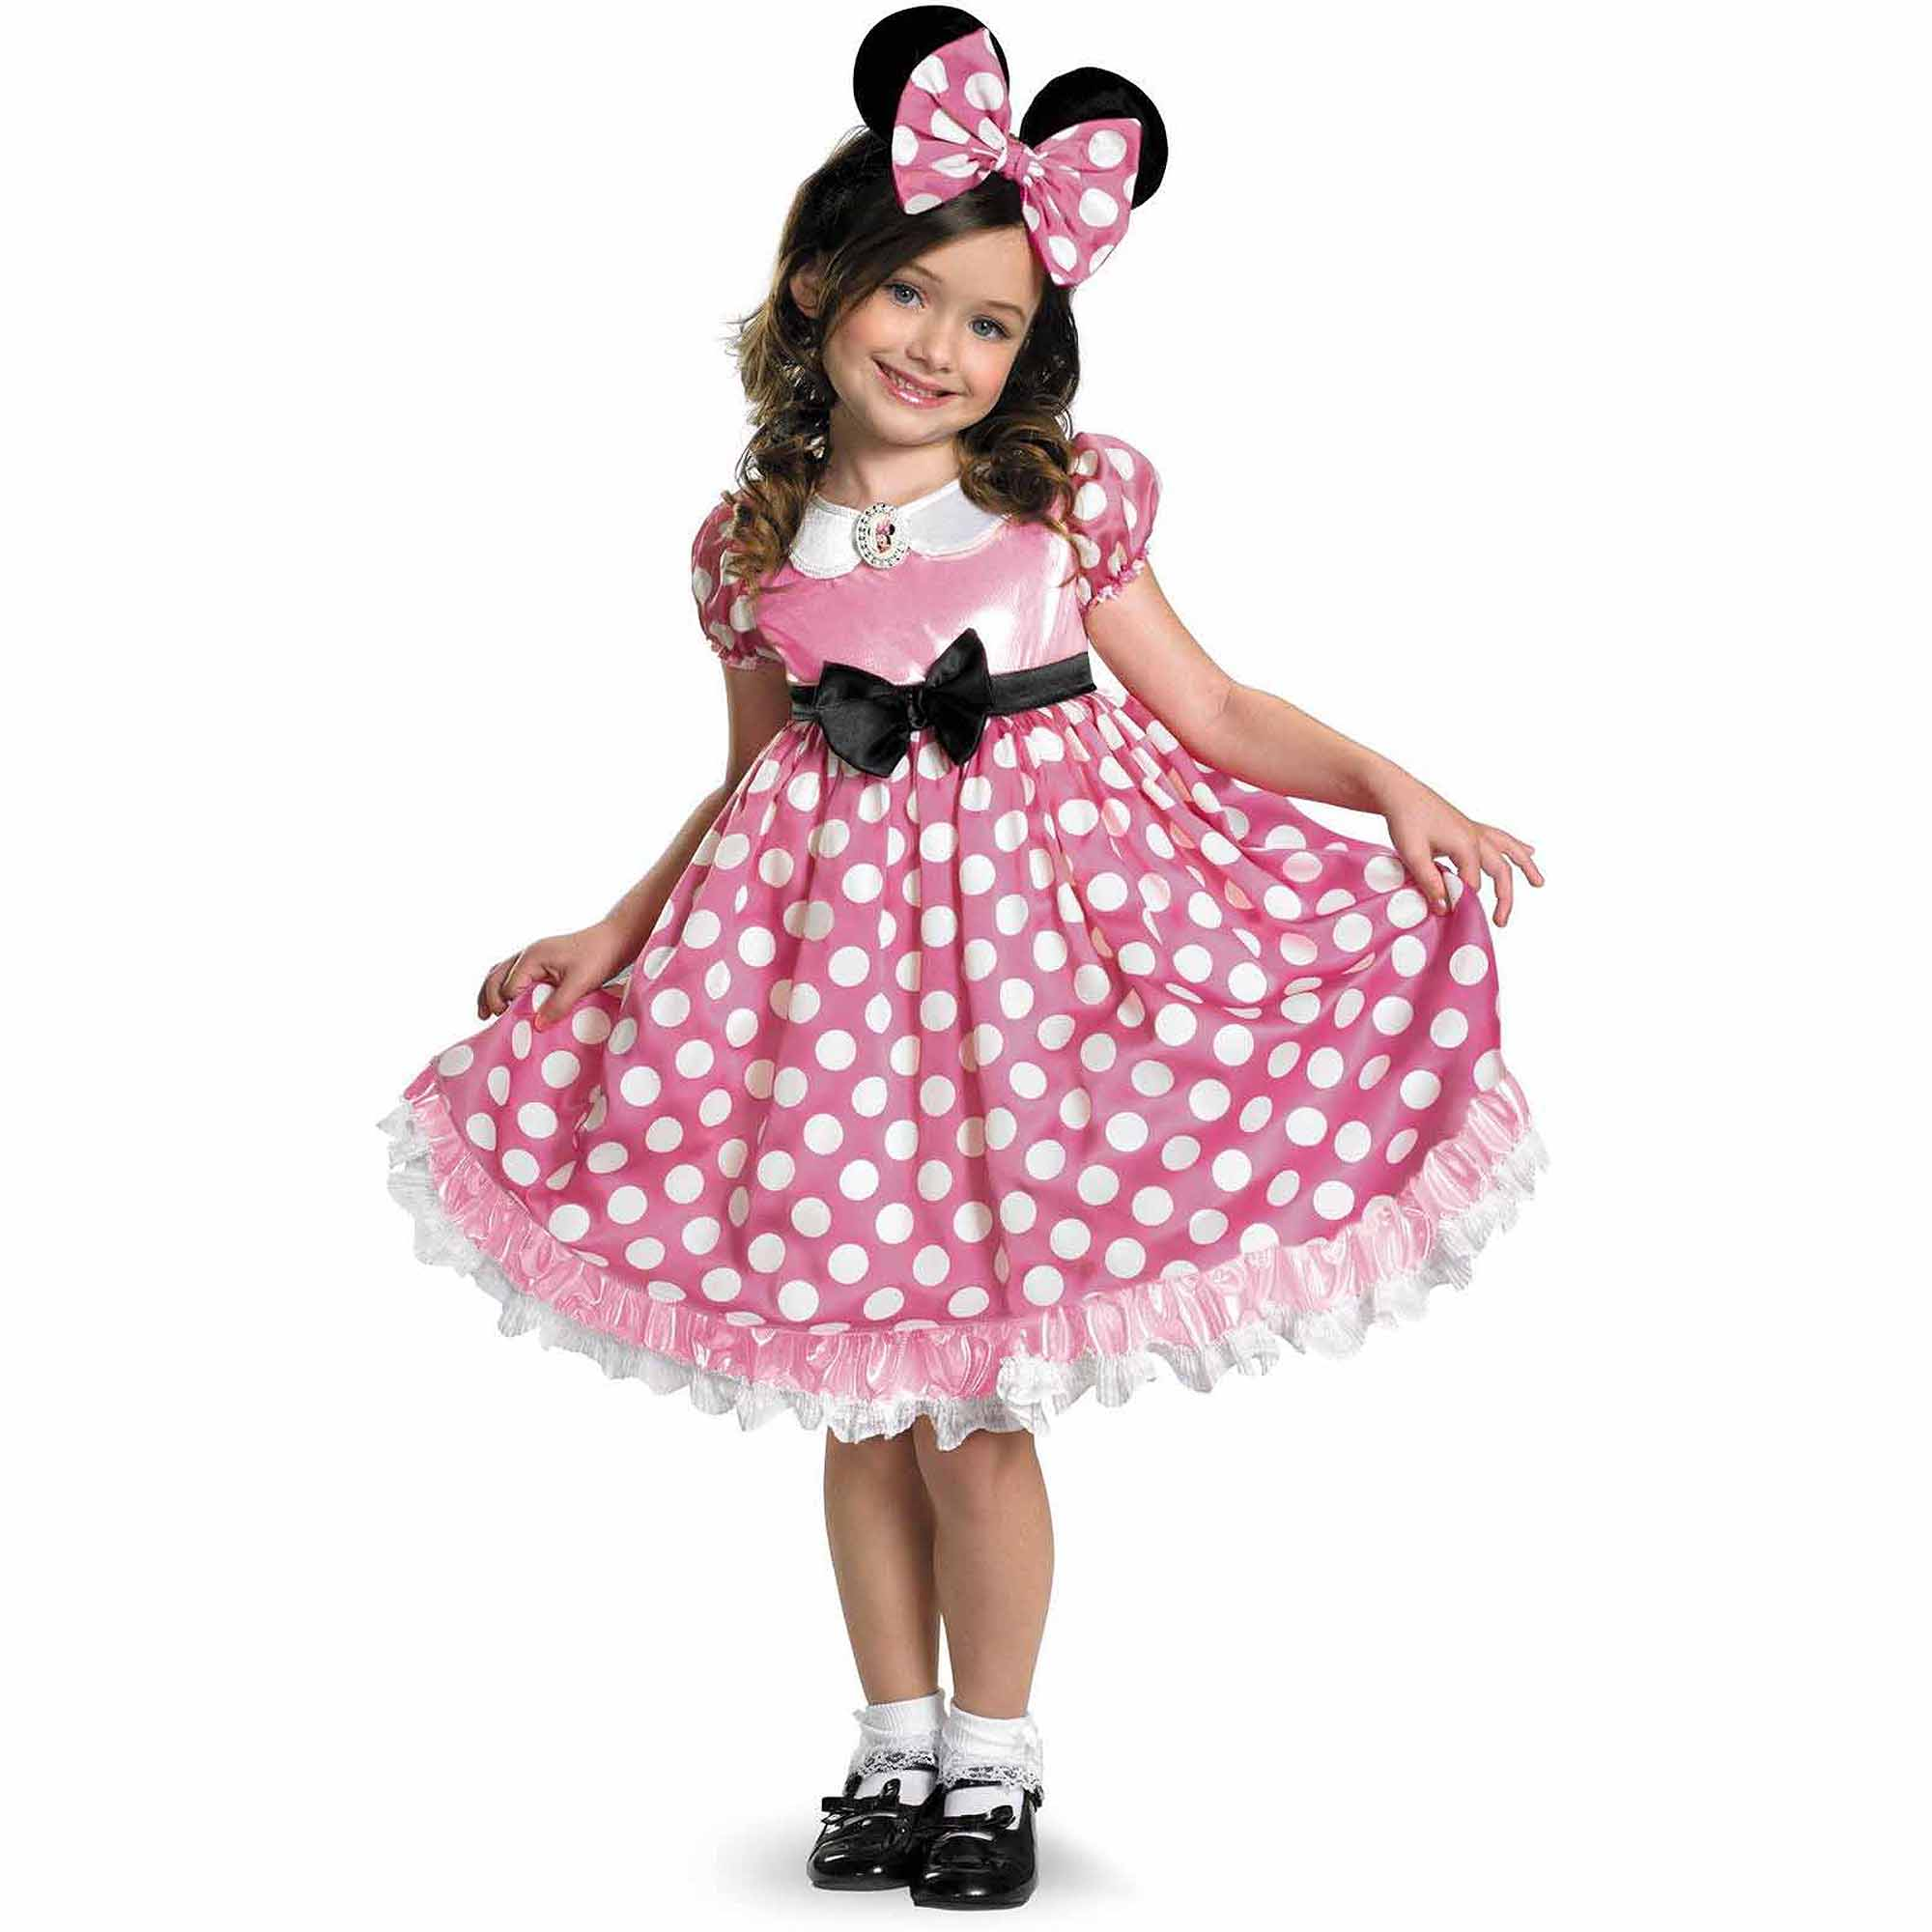 Disney Mickey Mouse Clubhouse Pink Minnie Mouse Glow-in-the-Dark Child Halloween Costume